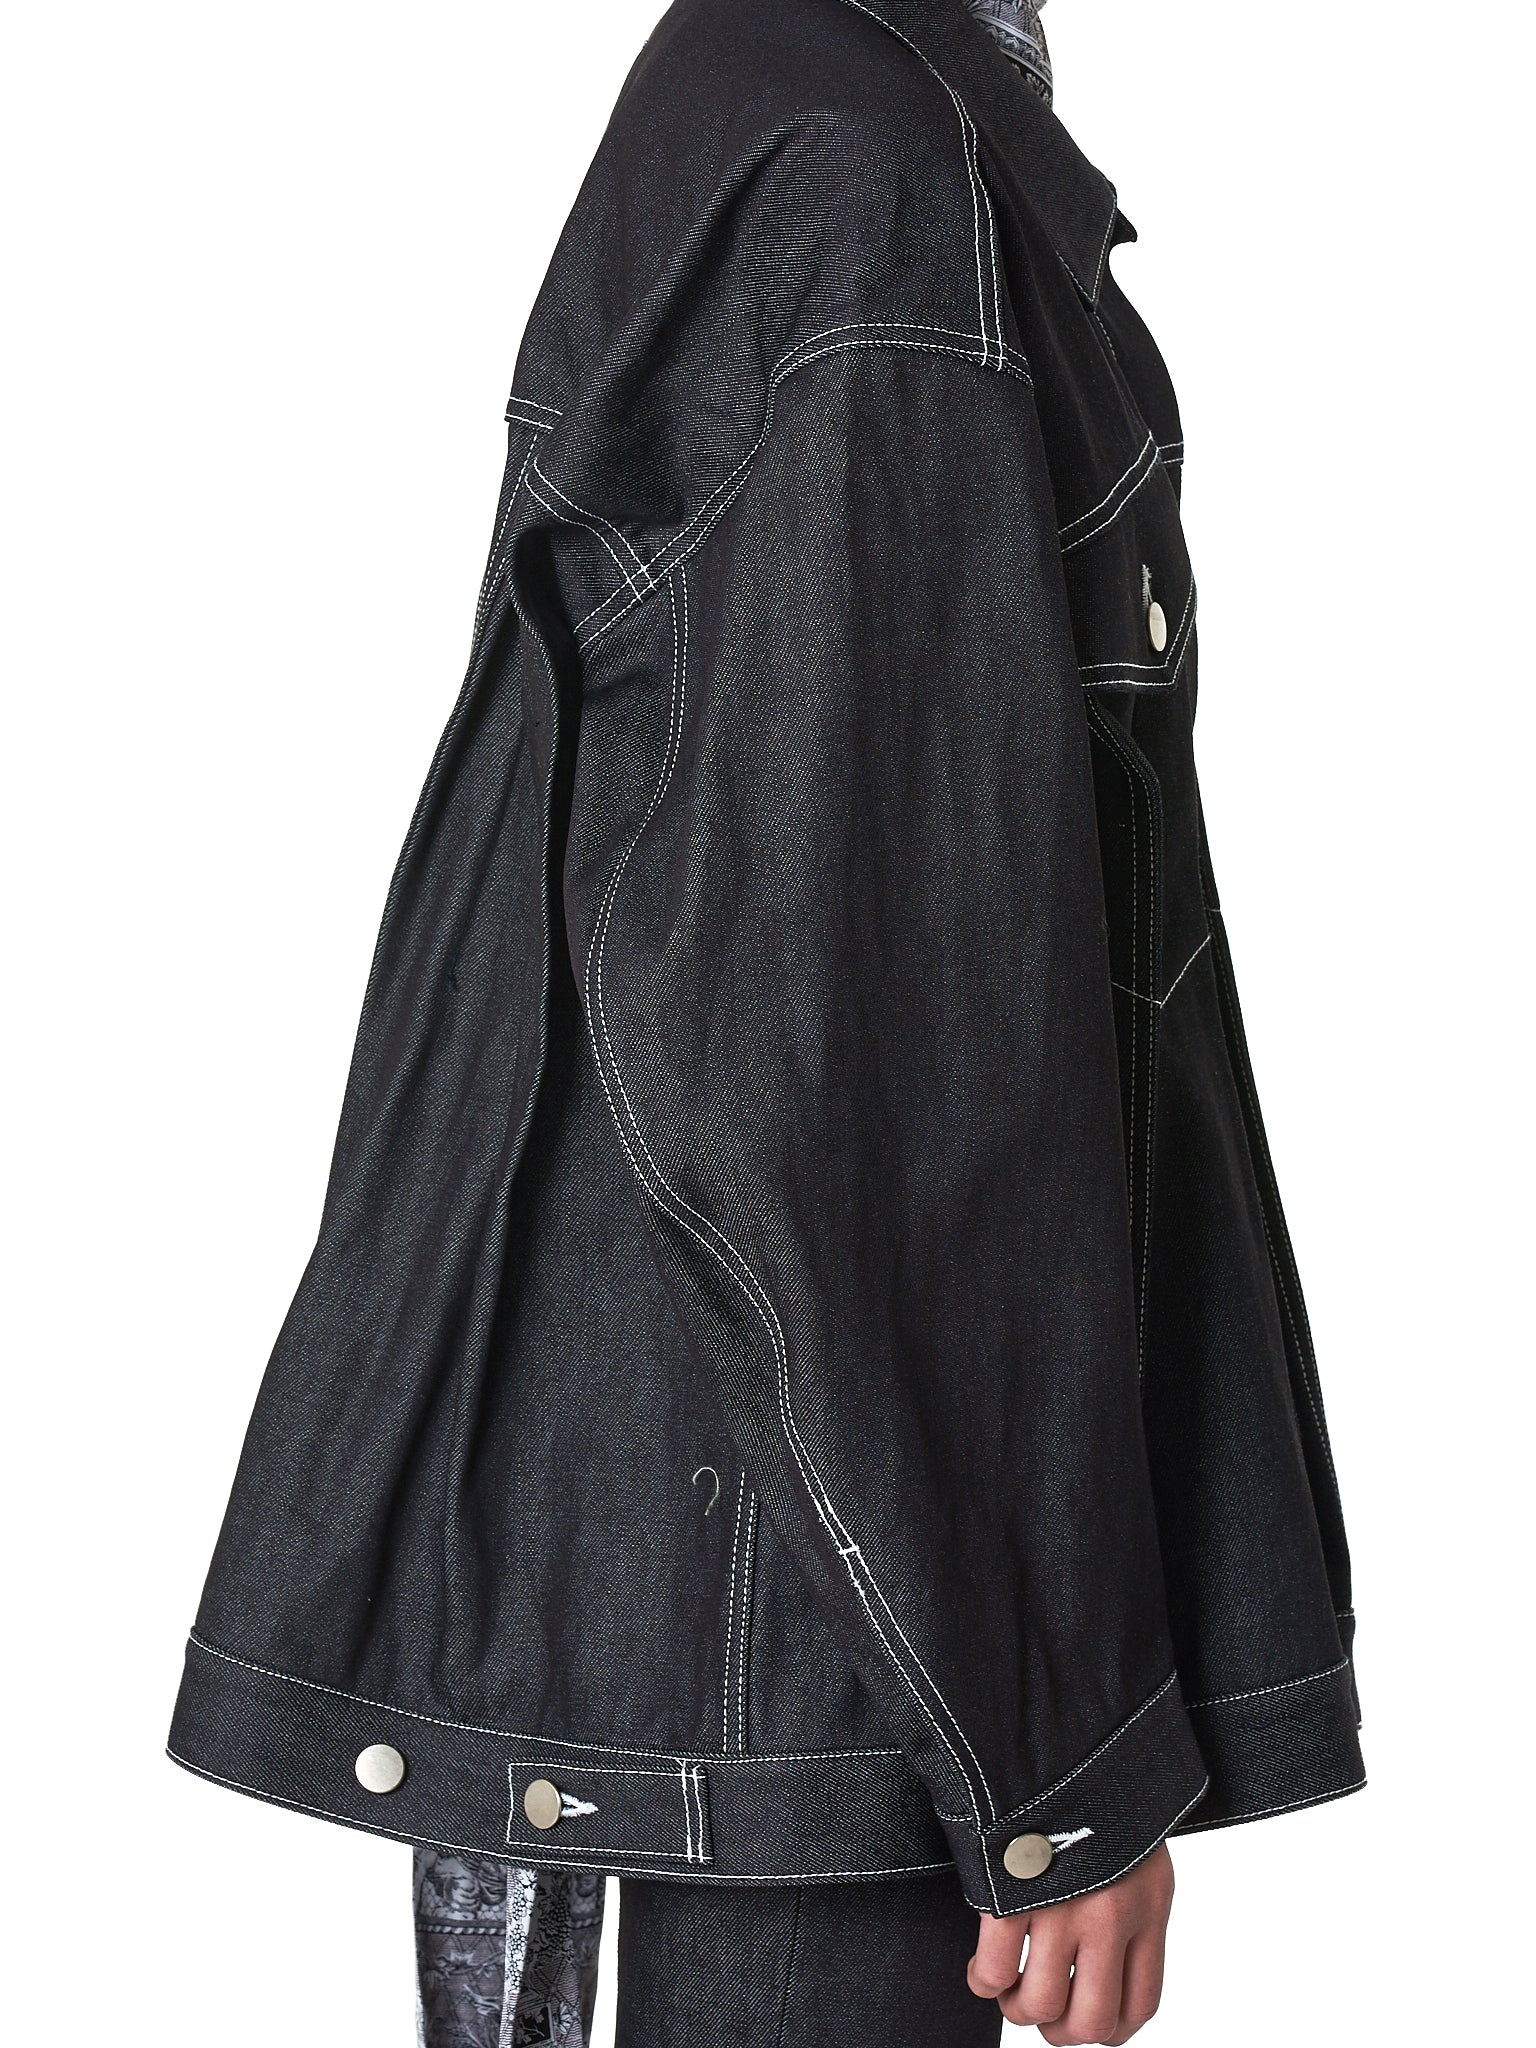 Irene Denim Jacket - Hlorenzo Detail 1